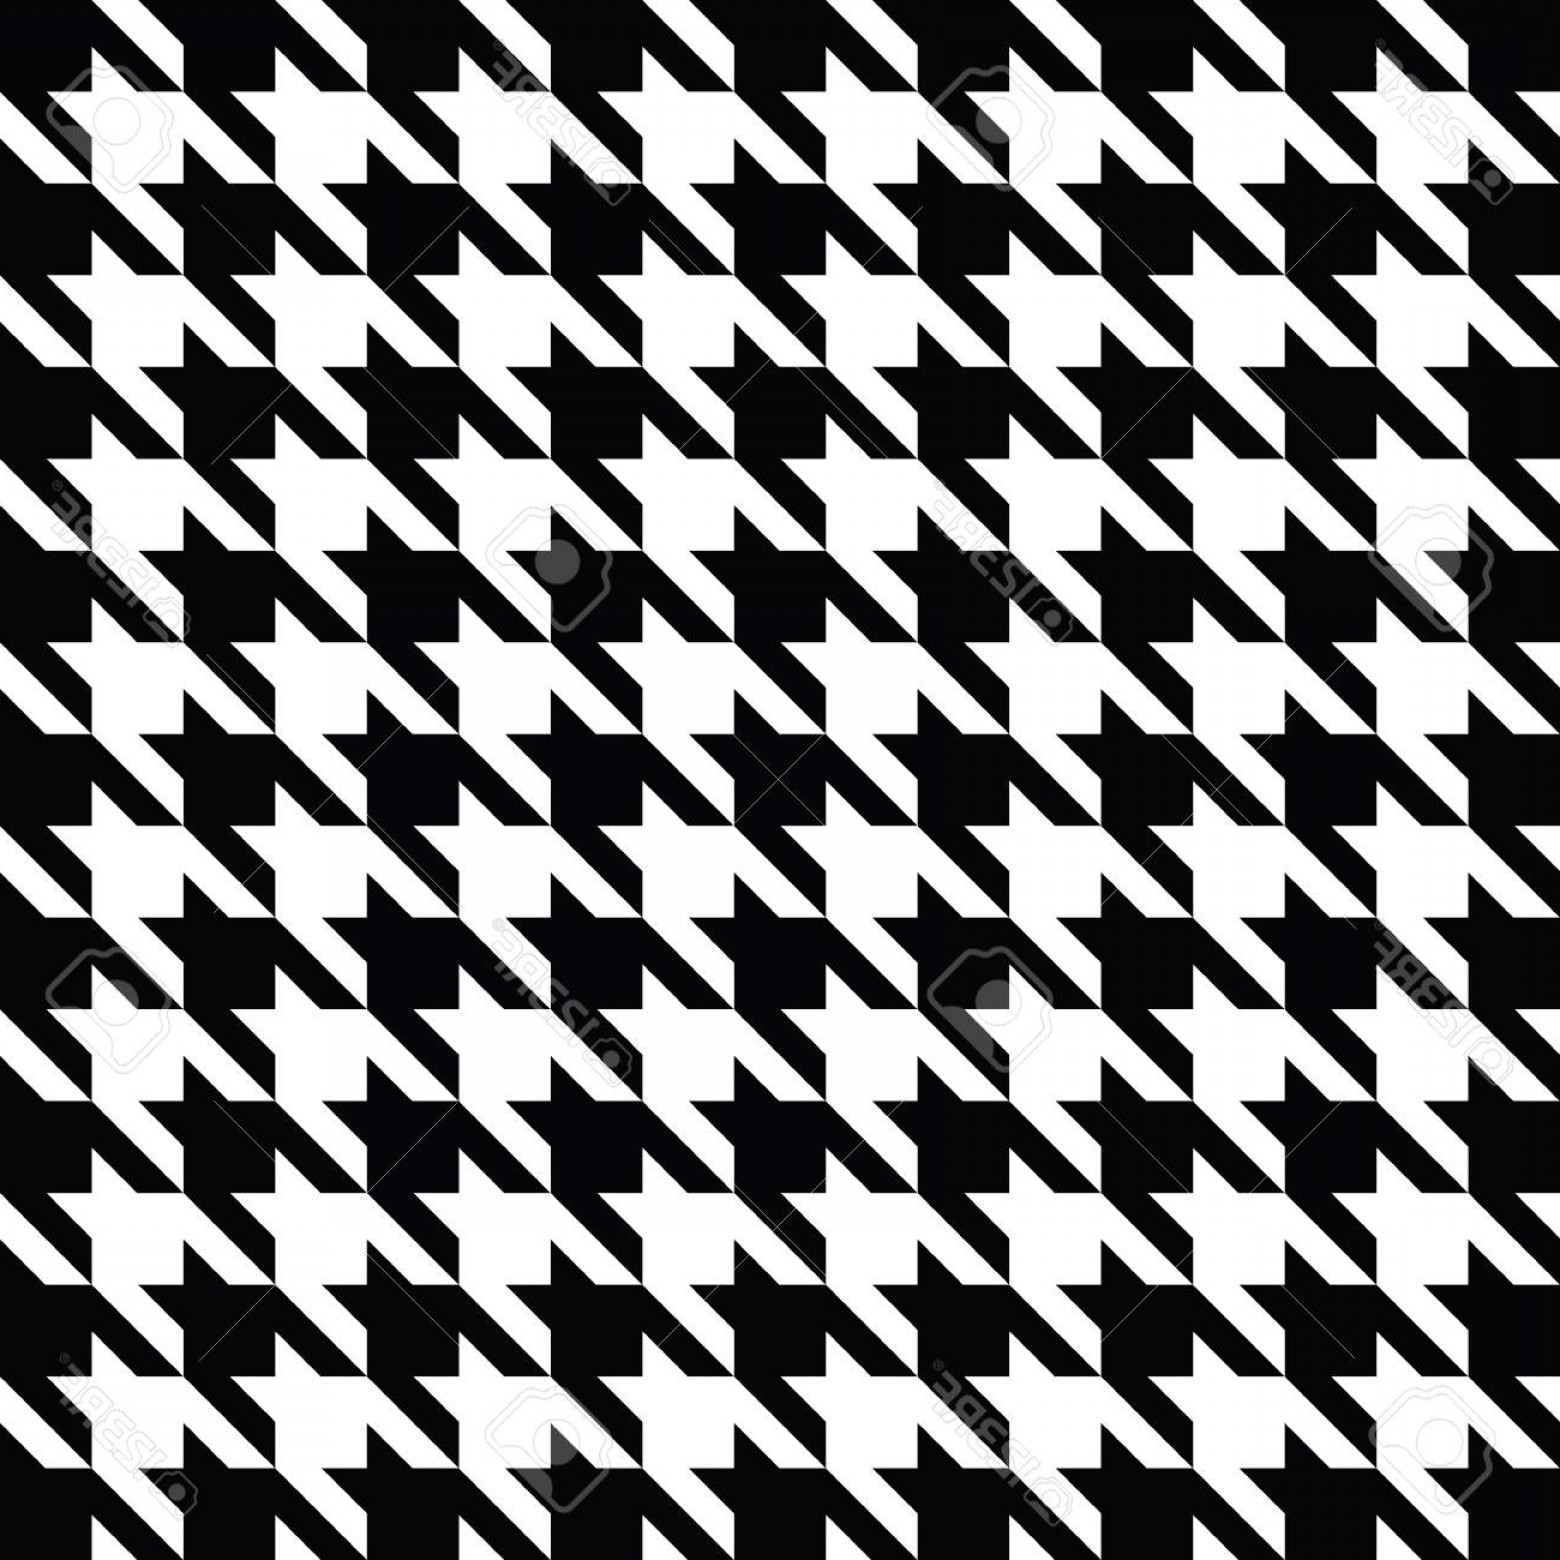 Houndstooth Vector: Photostock Vector Black And White Houndstooth Pattern Vector Classical Checkered Textile Design